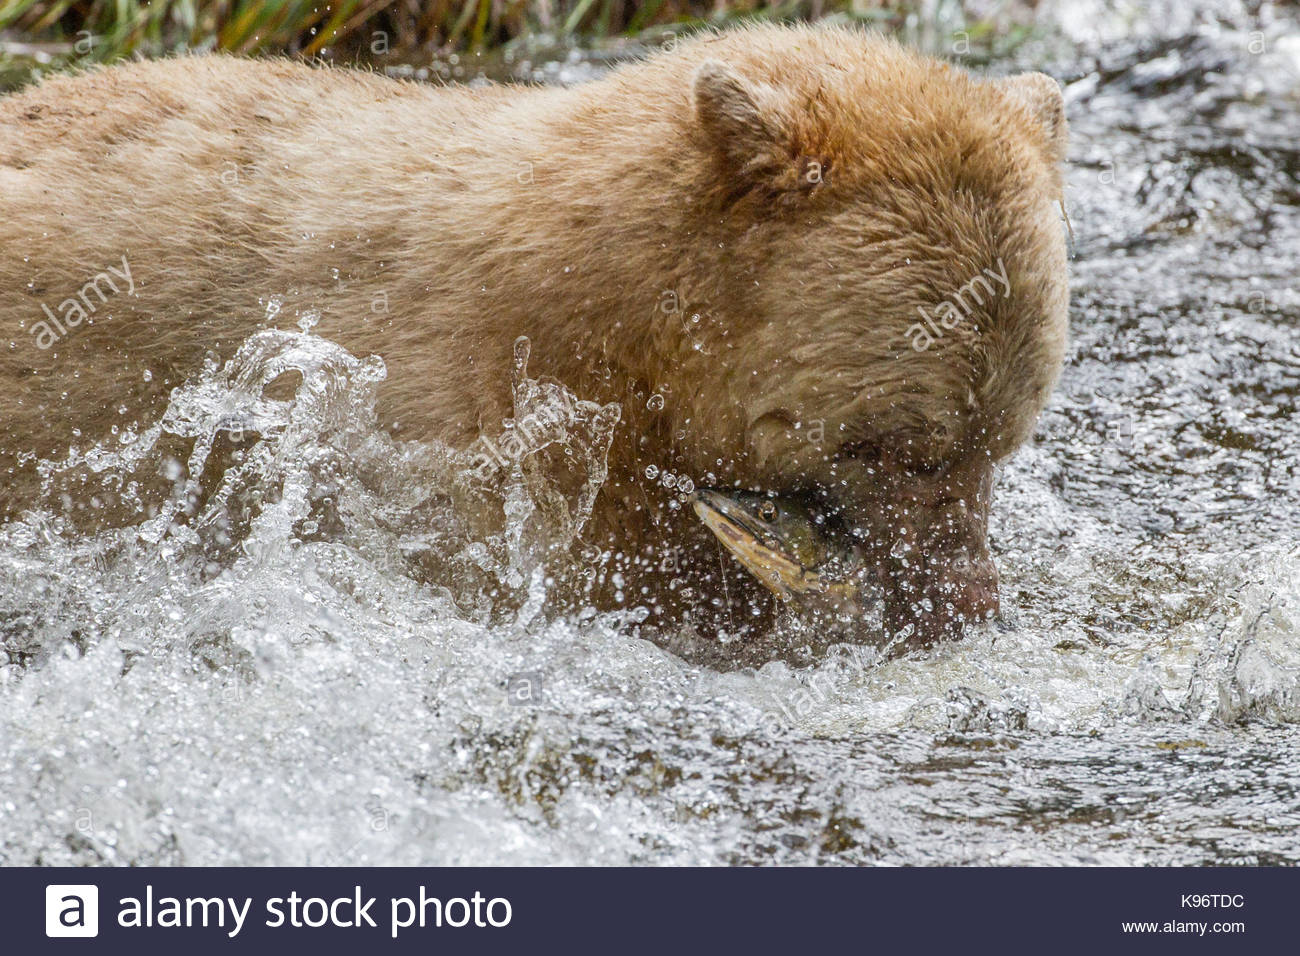 Kermode bear mid-catch in middle of splash. - Stock Image